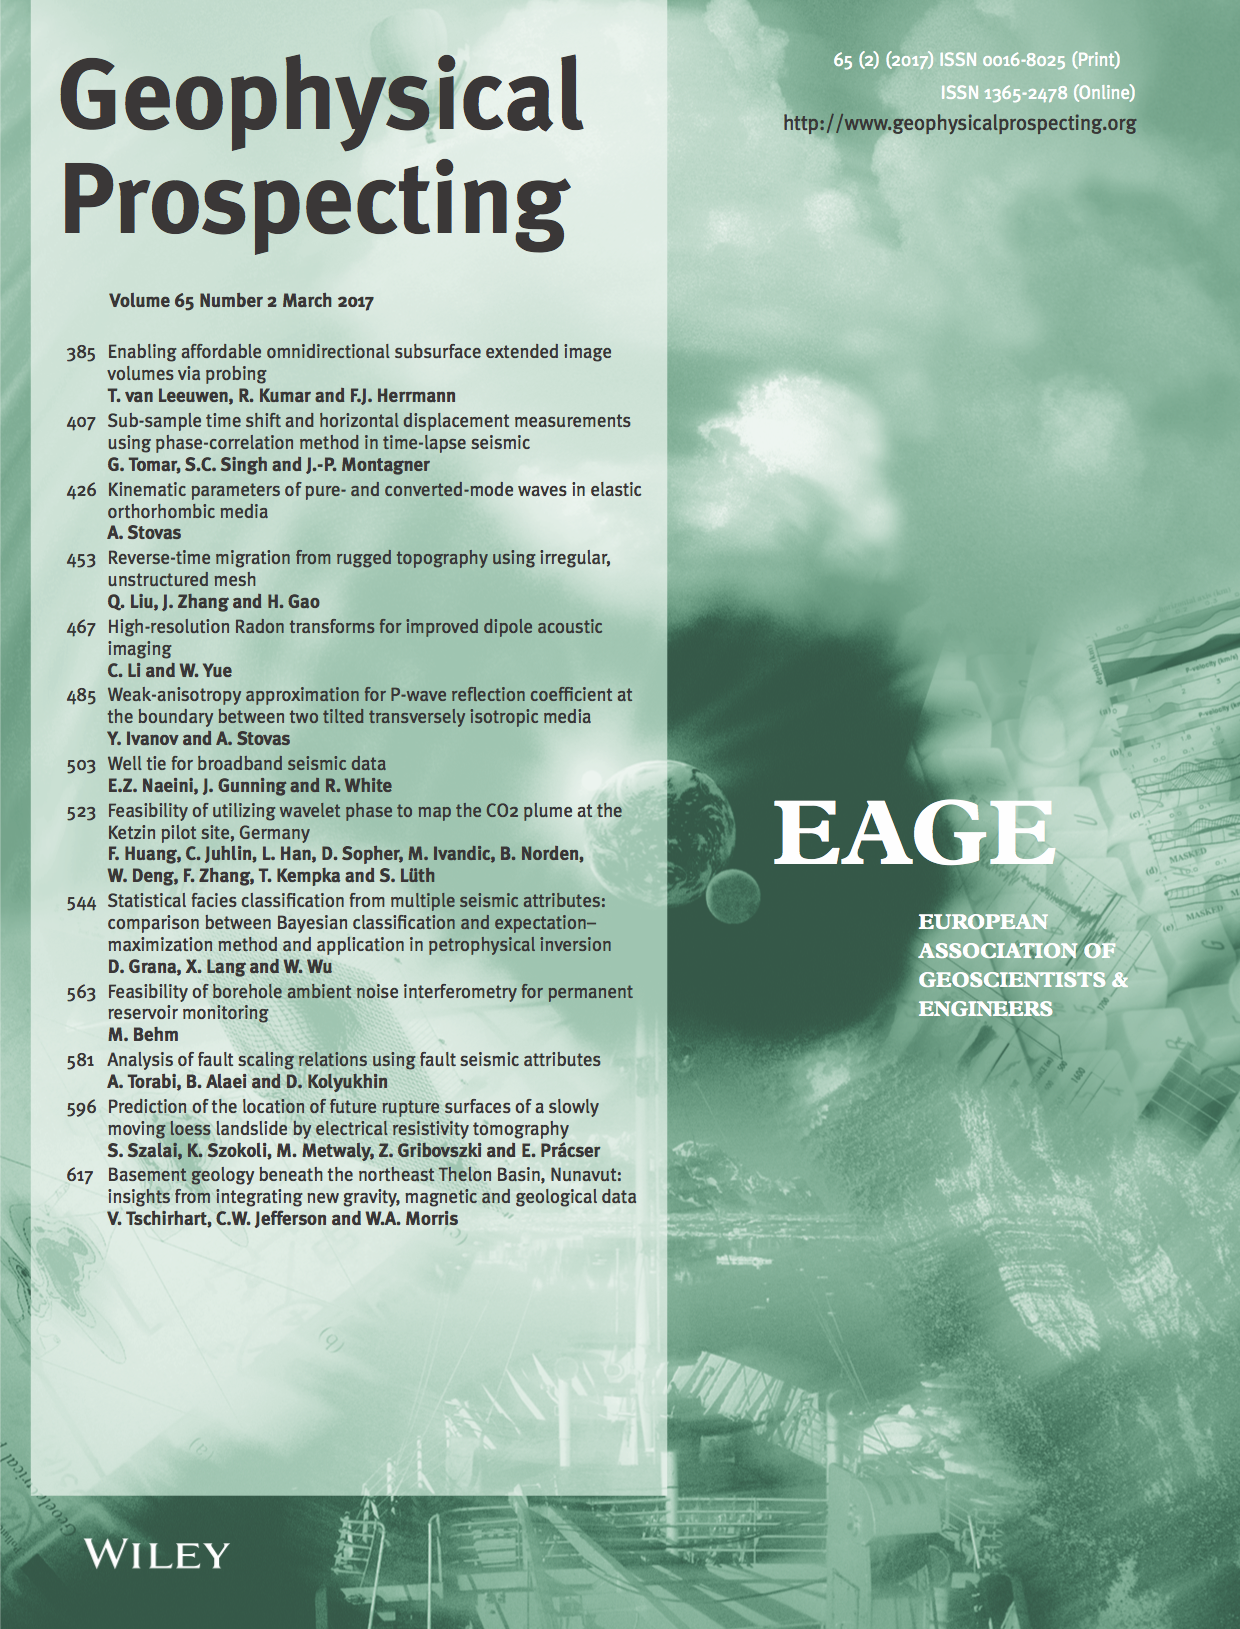 Template for submissions to Geophysical Prospecting